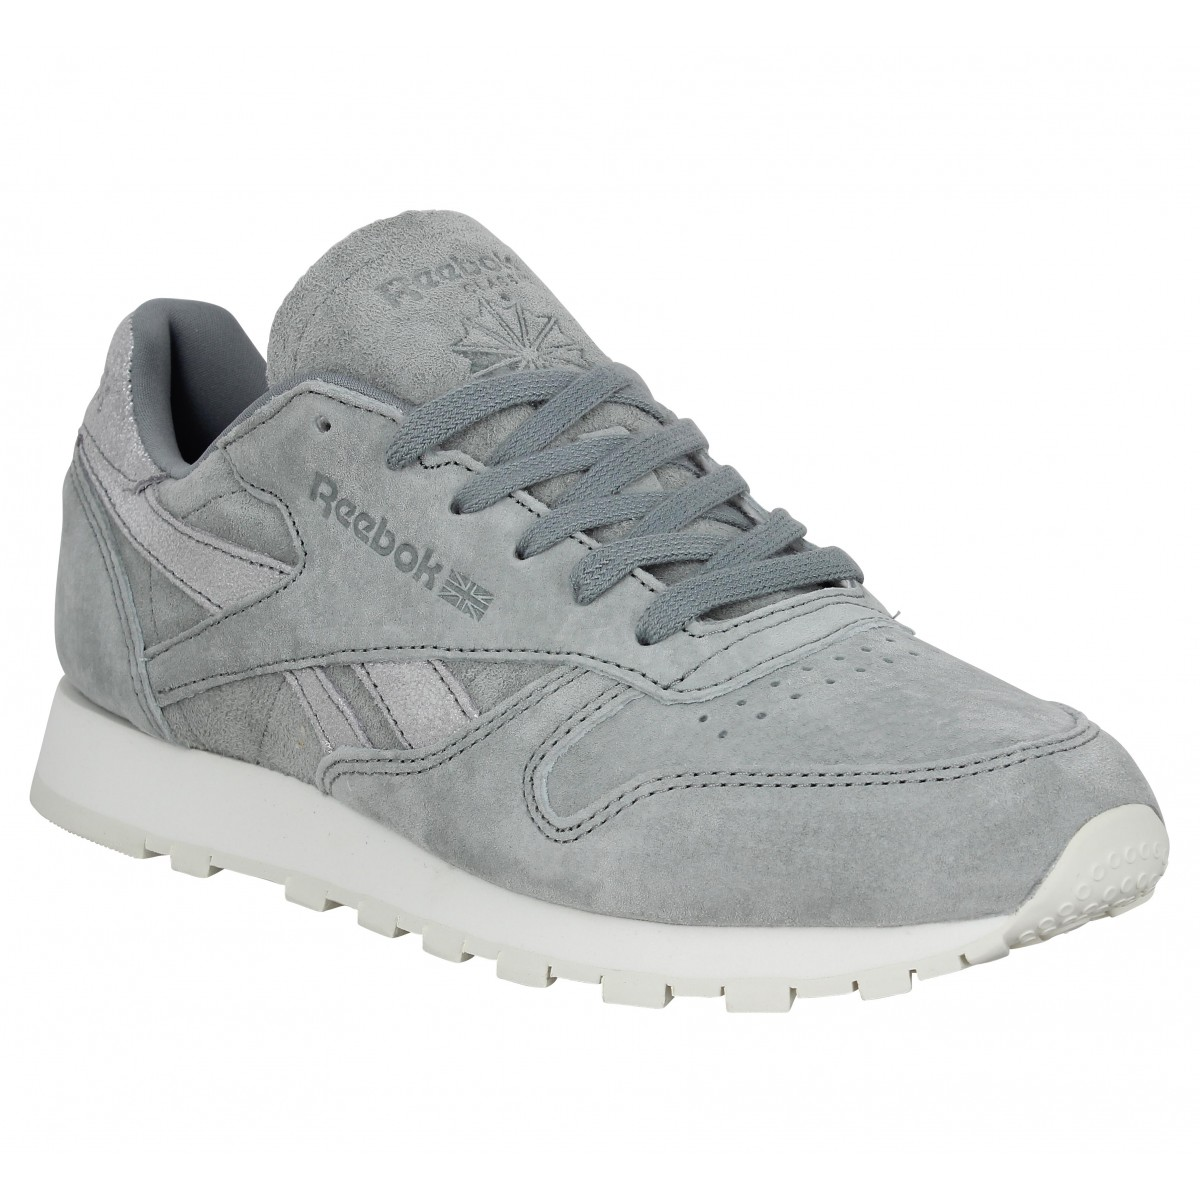 61297bb5d22ac Baskets REEBOK Classic Leather Shimmer velours Femme Gris